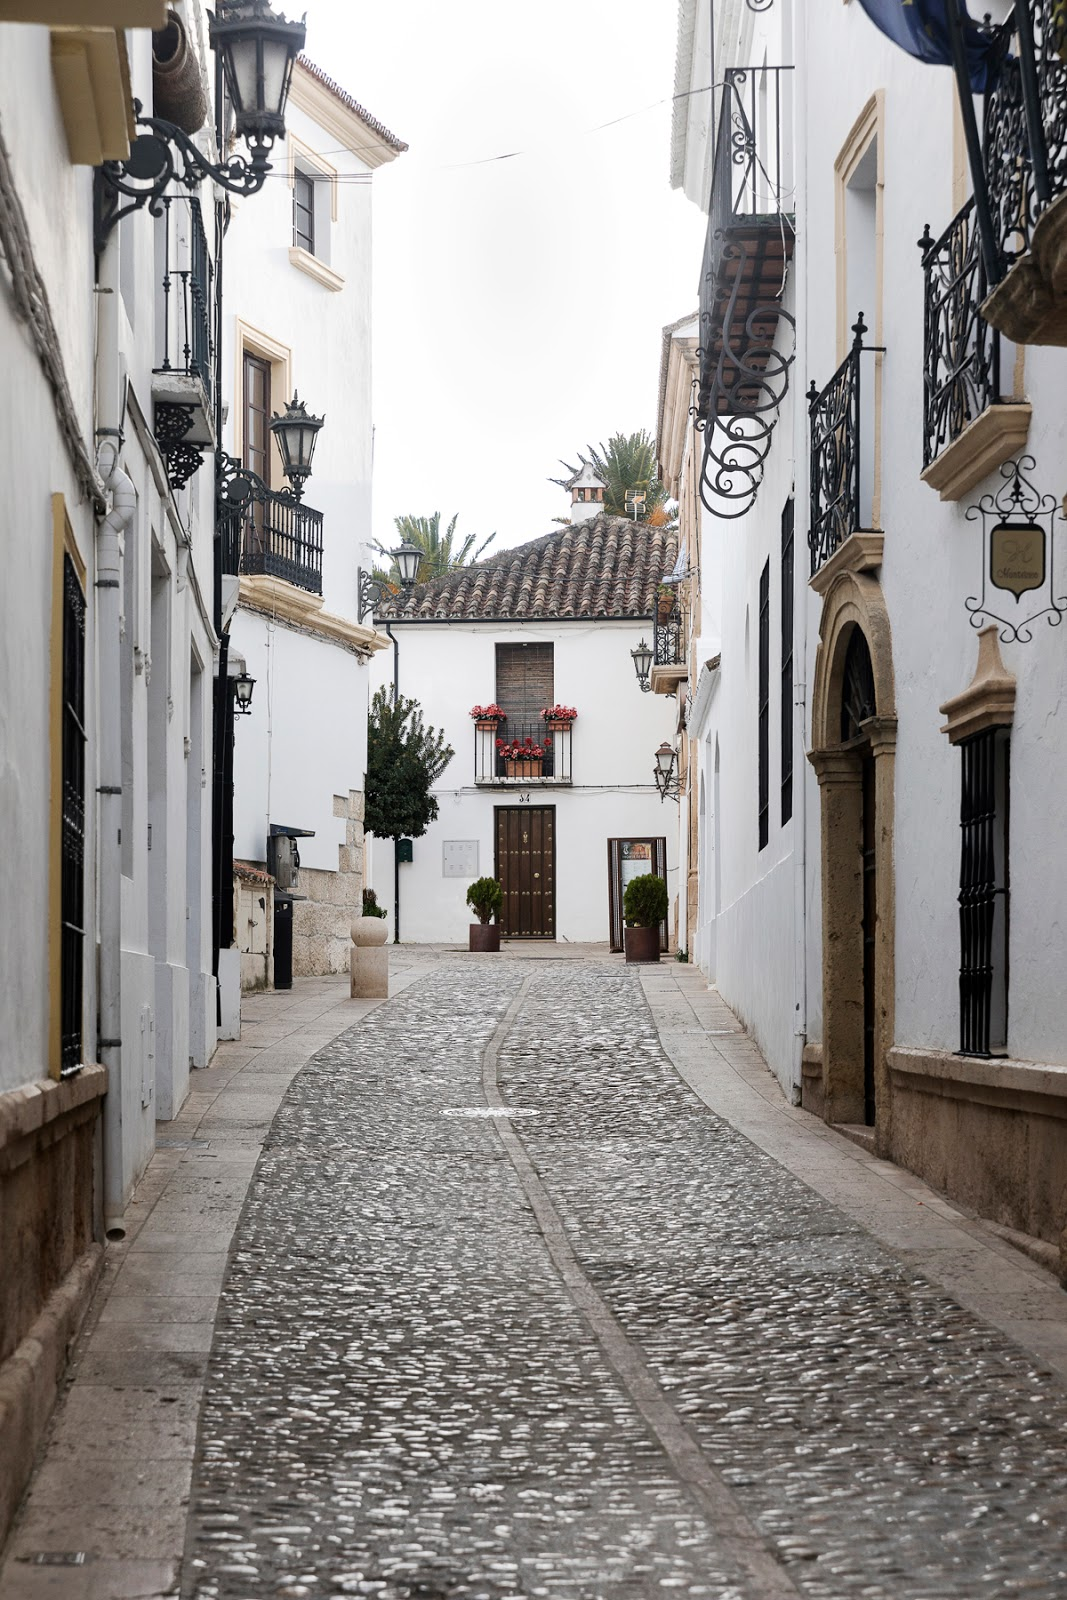 Ronda, Espanja, Spain, visitspain, tourism, where to go in spain, ciudad, pueblo blanco, white village, Serrania de Ronda, mountains, valokuvaaja, photographer, Frida Steiner, Visualaddict, Visualaddictfrida,